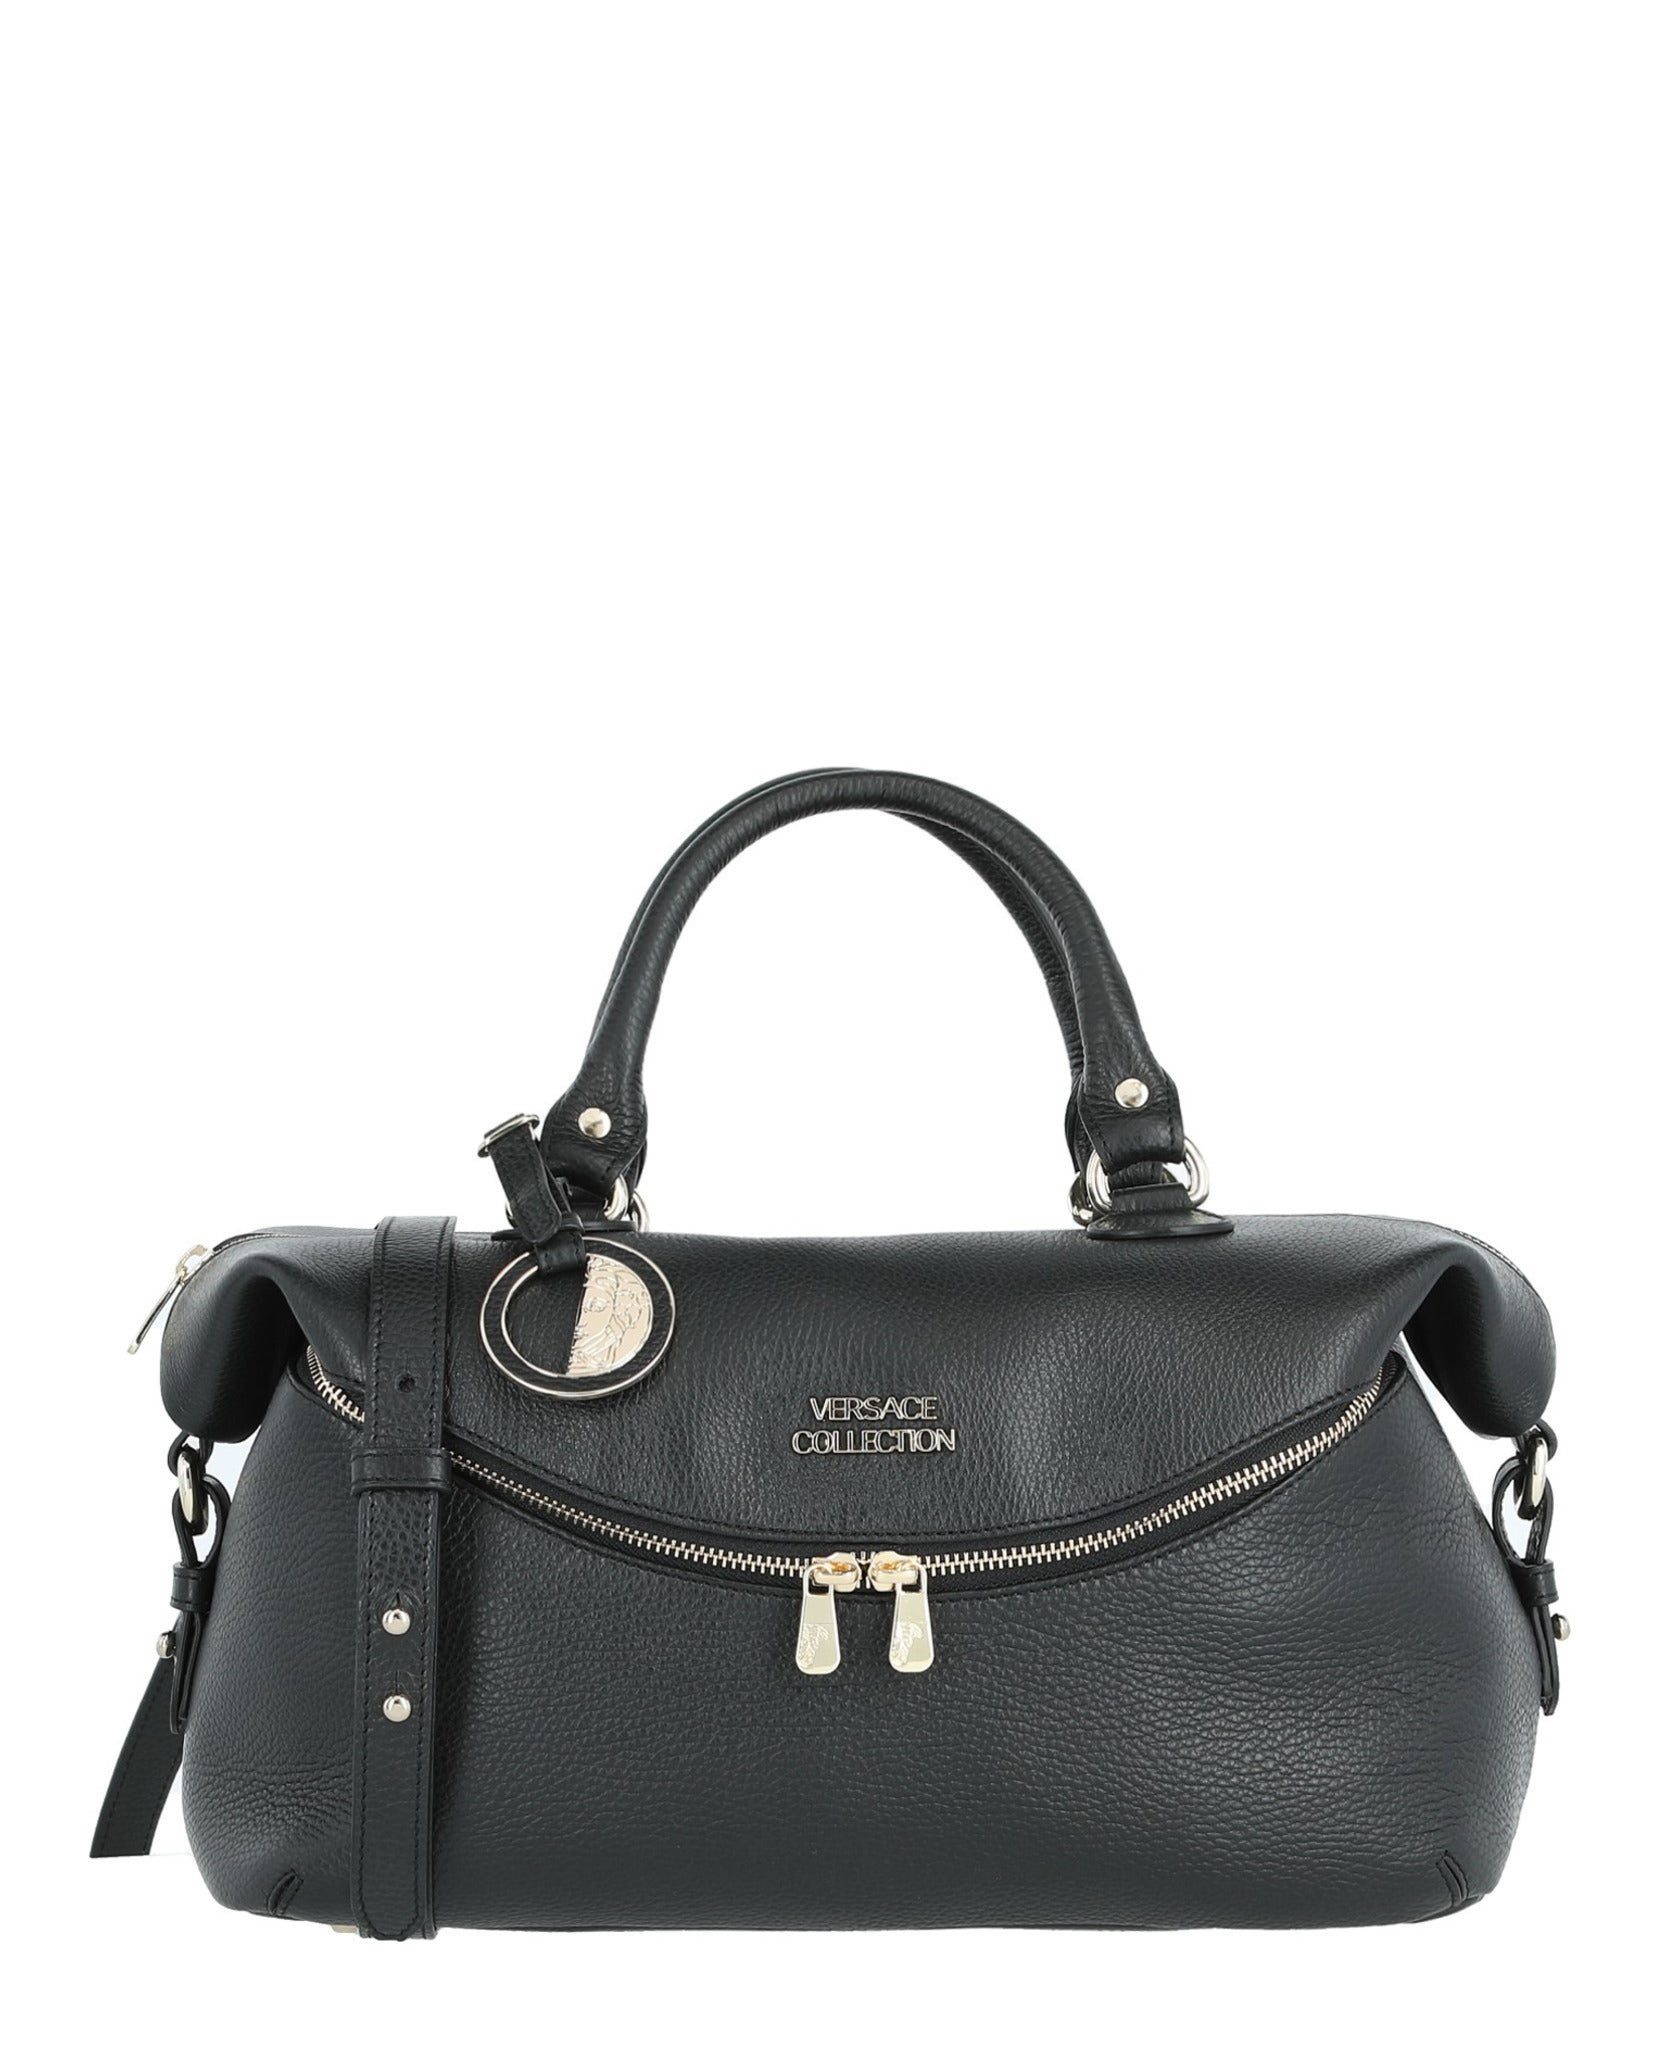 977106c85e66af Versace Collection Womens Leather Top Handle Bag   Madaluxe Vault ...